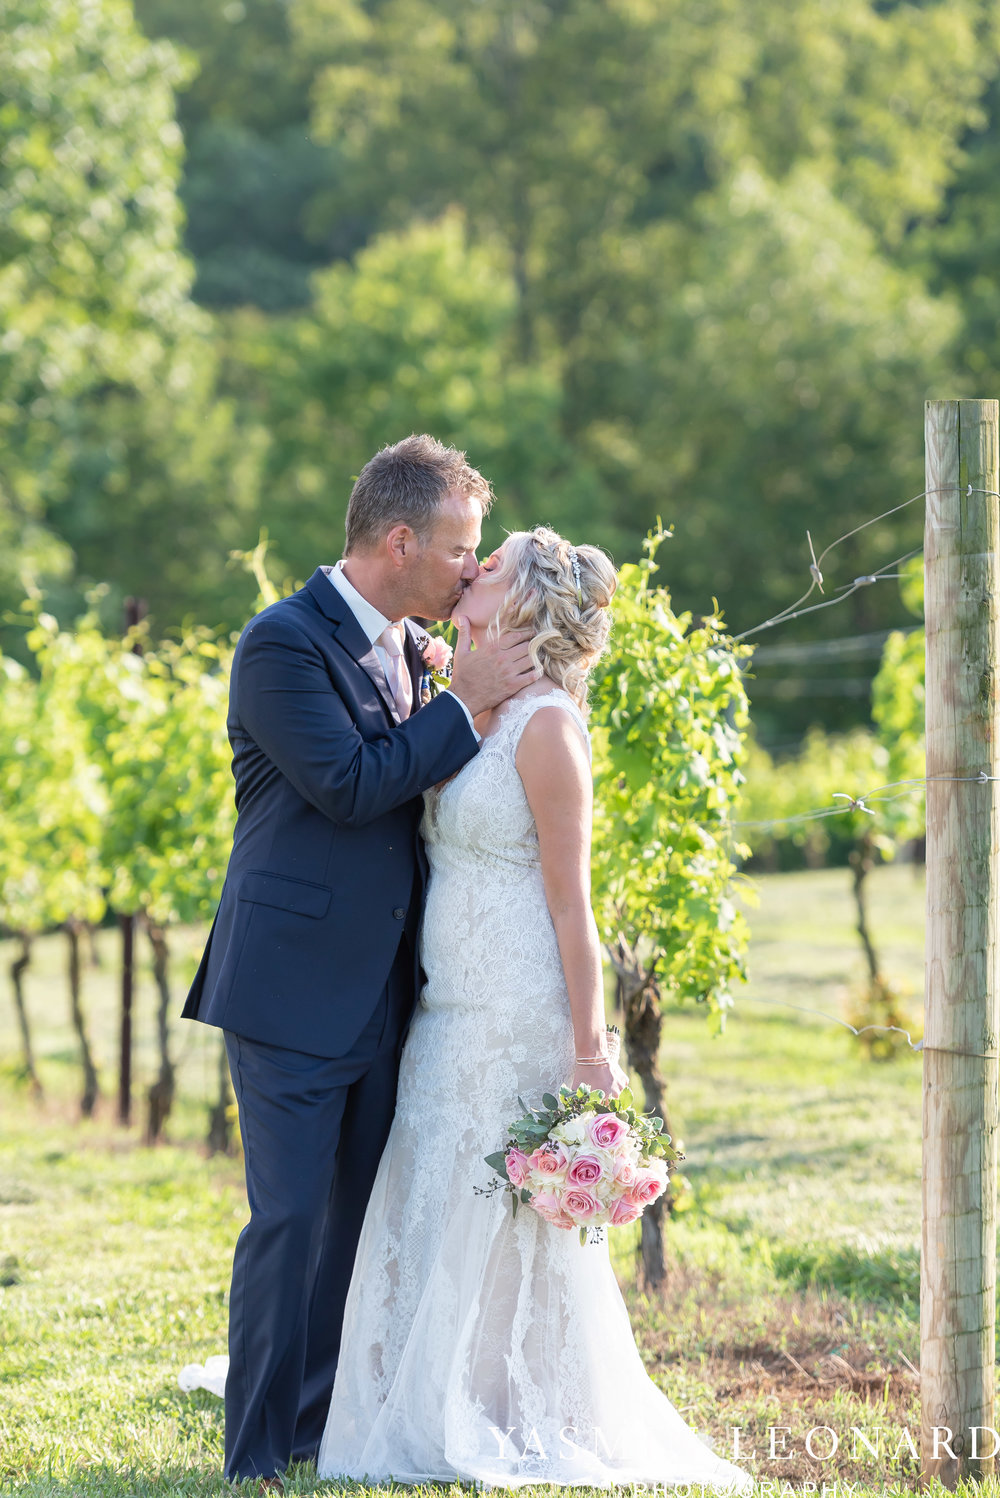 Elkin Creek Vineyard - Elkin Creek Weddings - NC Wine - NC Wineries - NC Weddings - NC Photographers - NC Wedding Photographer - NC Winery Wedding Ideas - Yasmin Leonard Photography - High Point Wedding Photographer-54.jpg